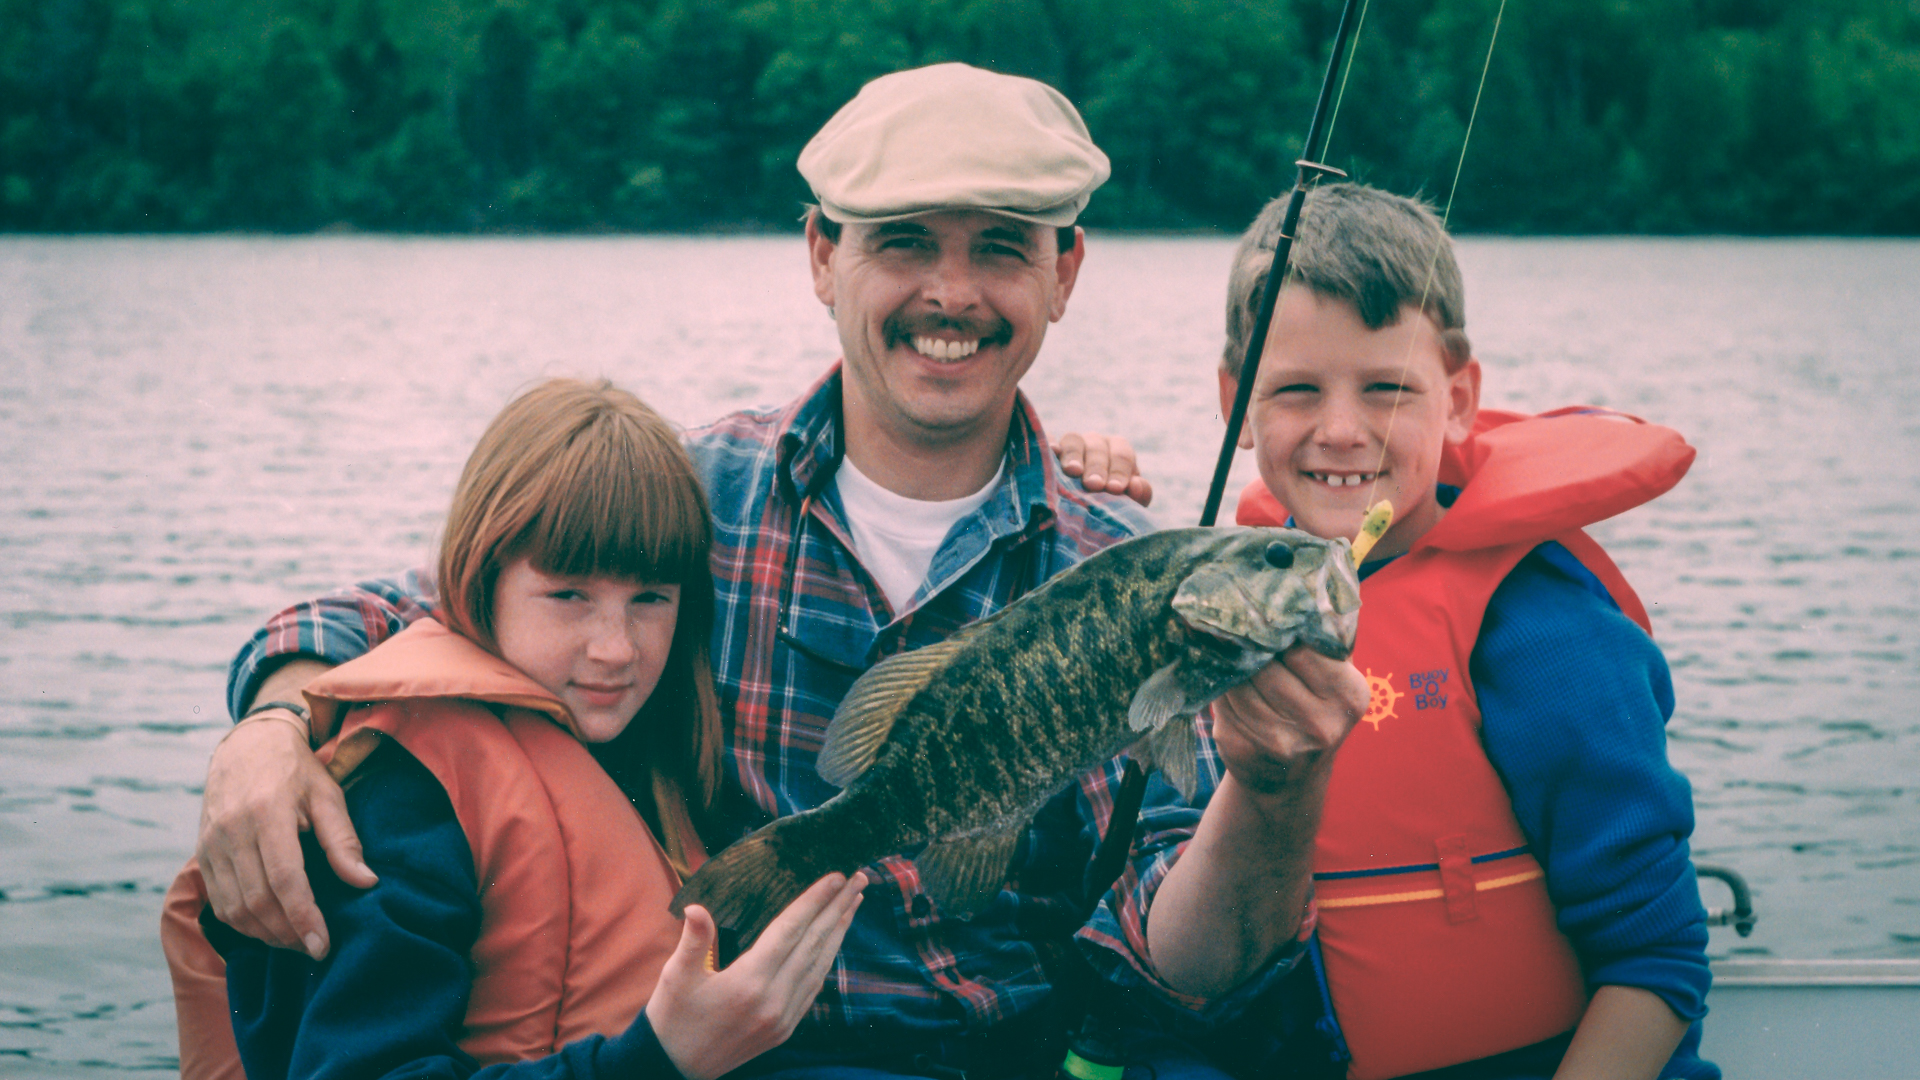 Fishing on the St. Croix River is fun for all the family.